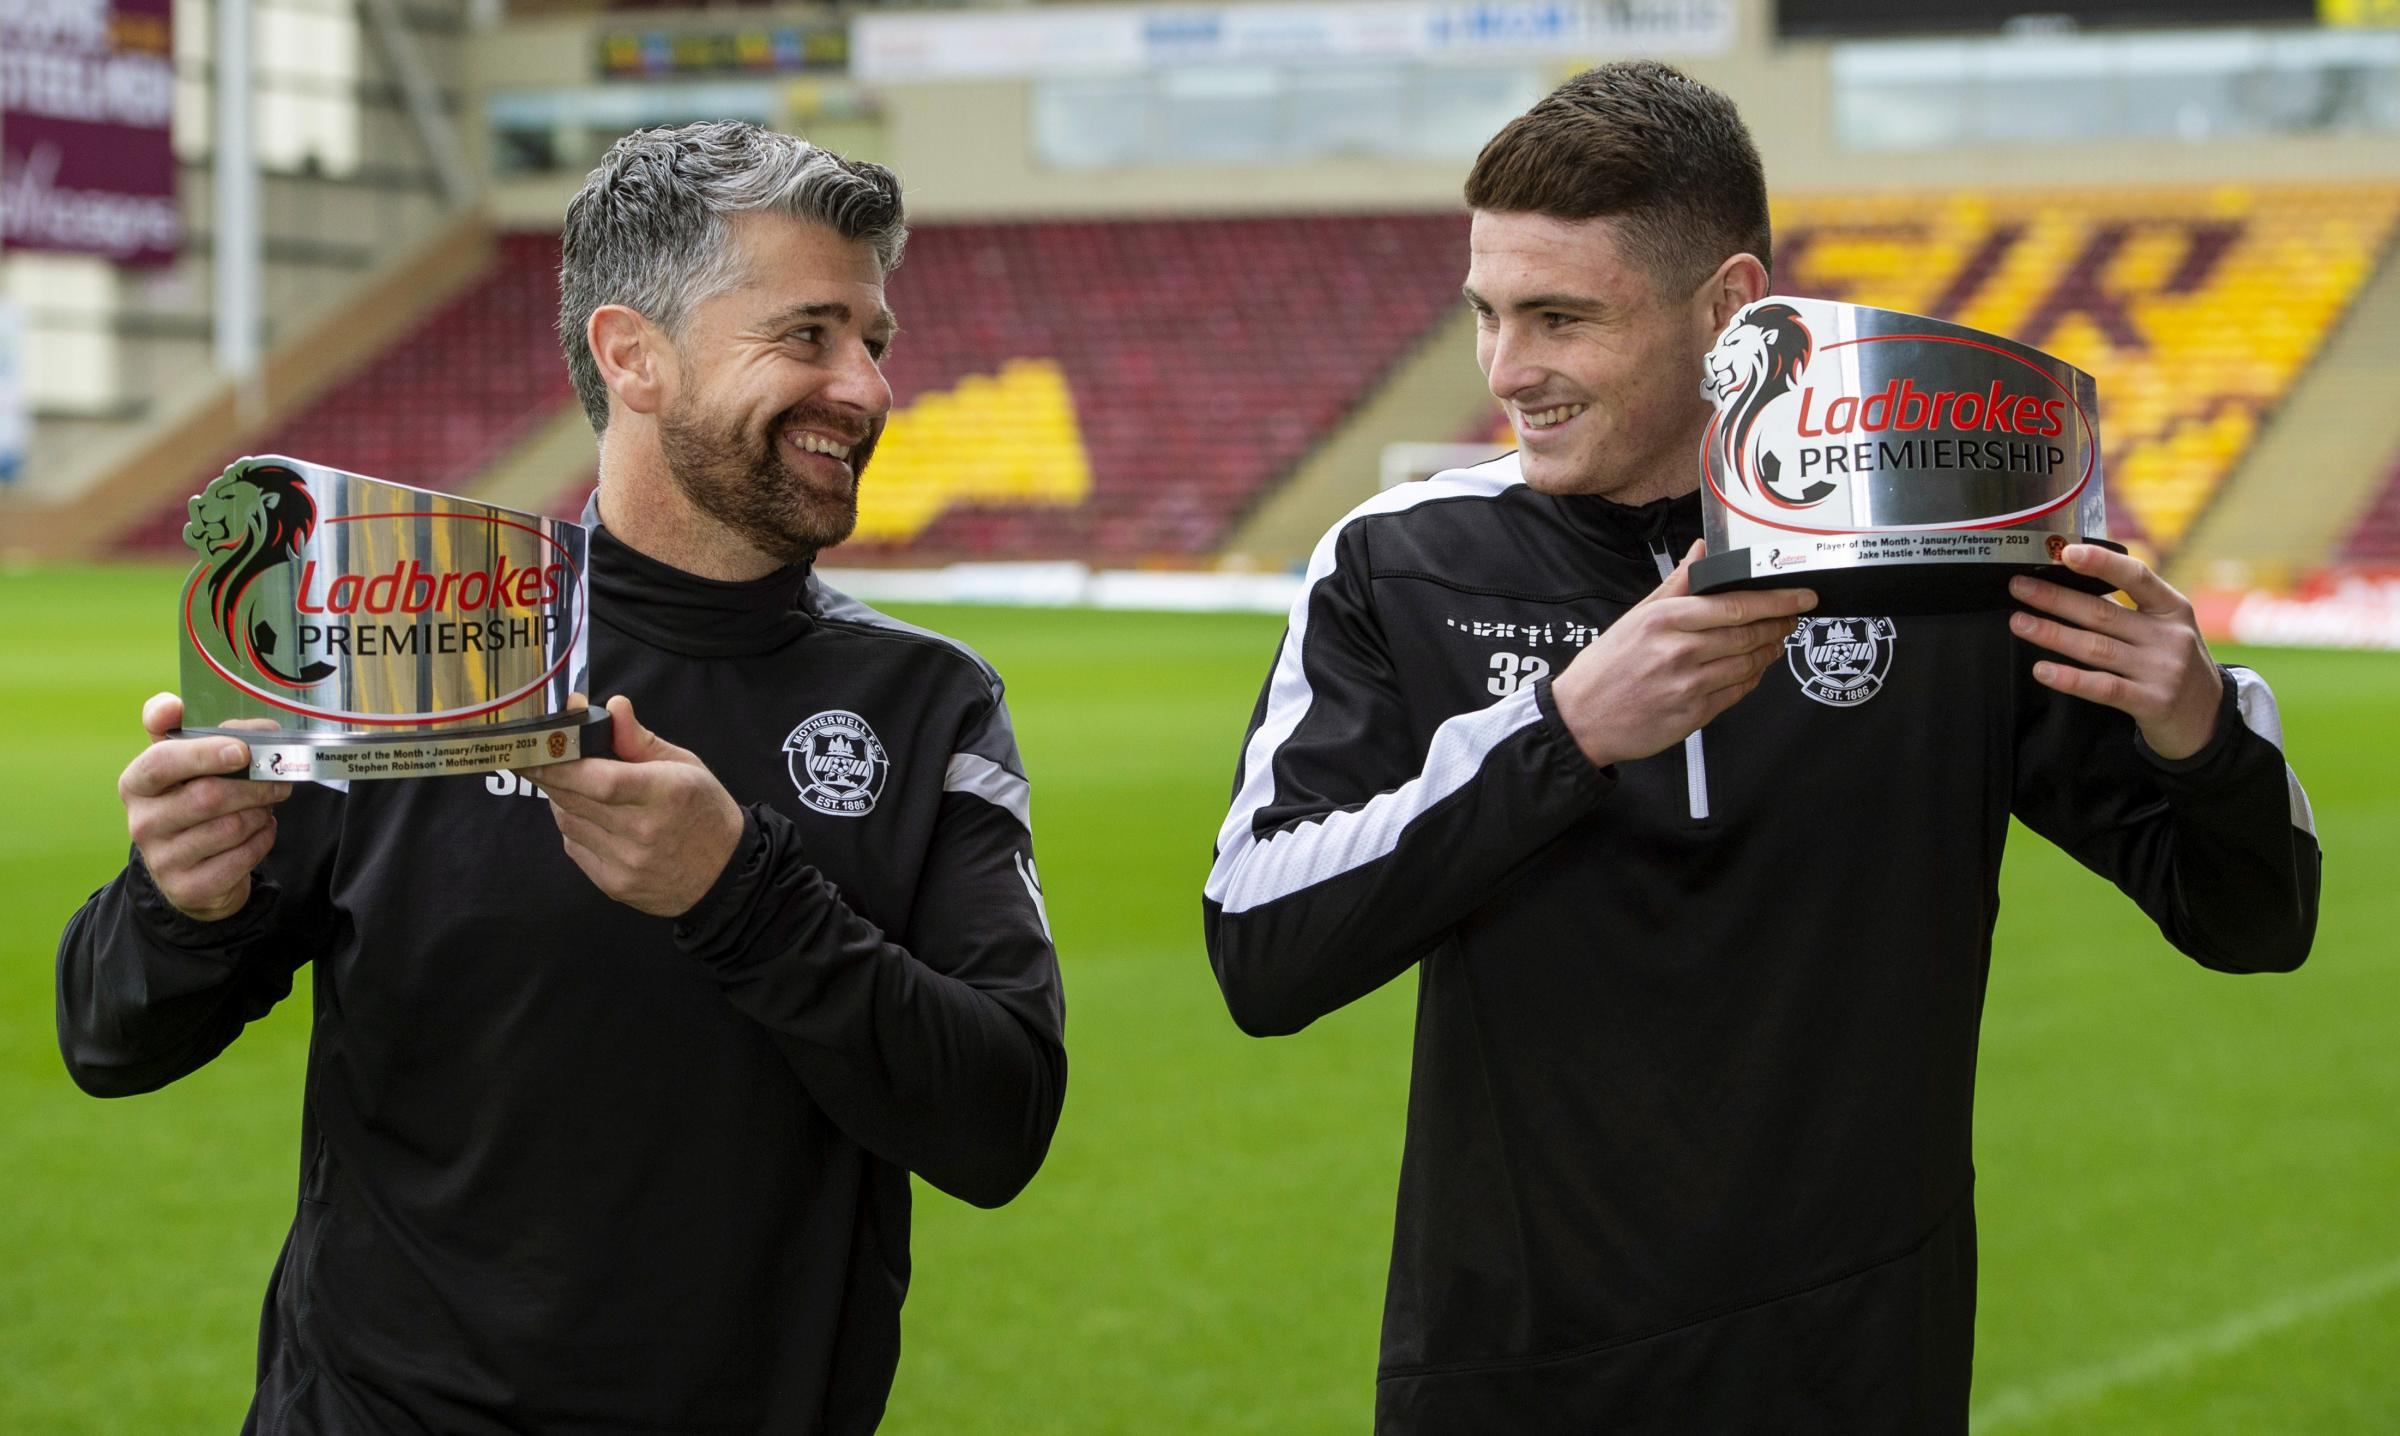 08/03/19.FIR PARK - MOTHERWELL.Motherwell manager Stephen Robinson and Jake Hastie are presented with the Ladbrokes Premiership Manager and Player of the Month awards for February.